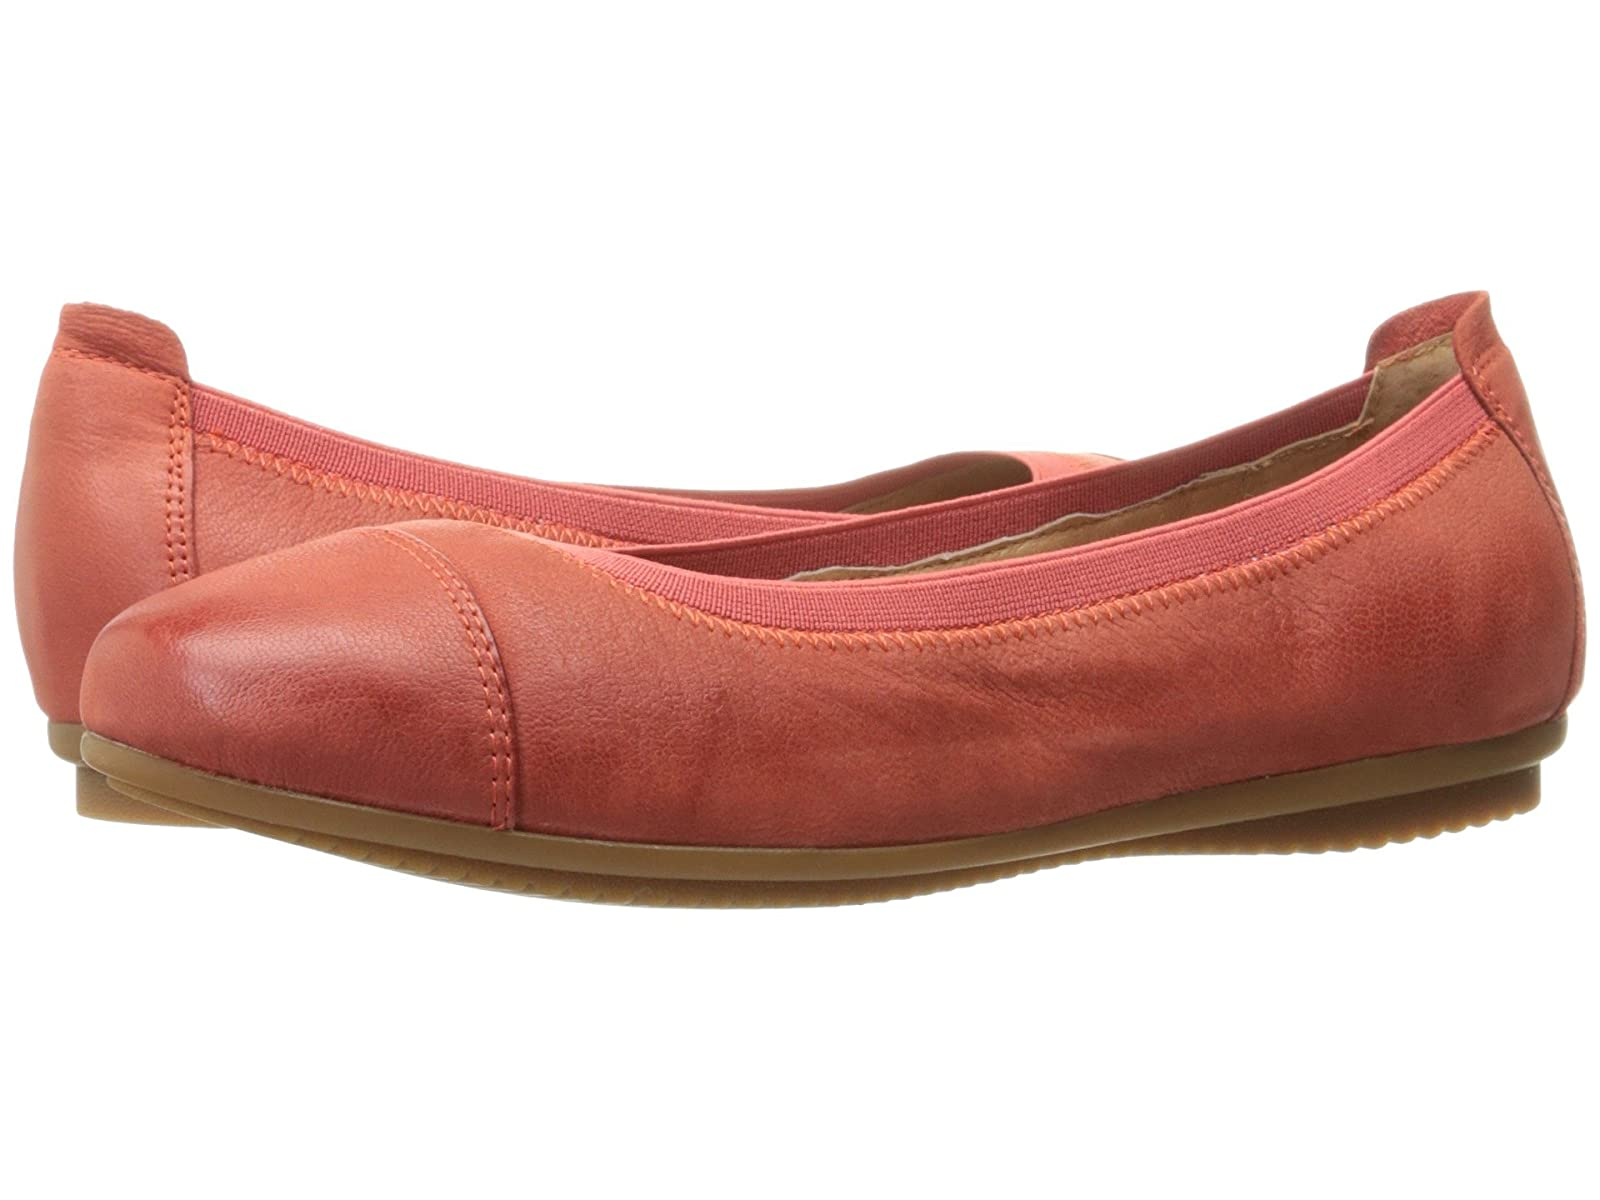 Josef Seibel Pippa 07Atmospheric grades have affordable shoes